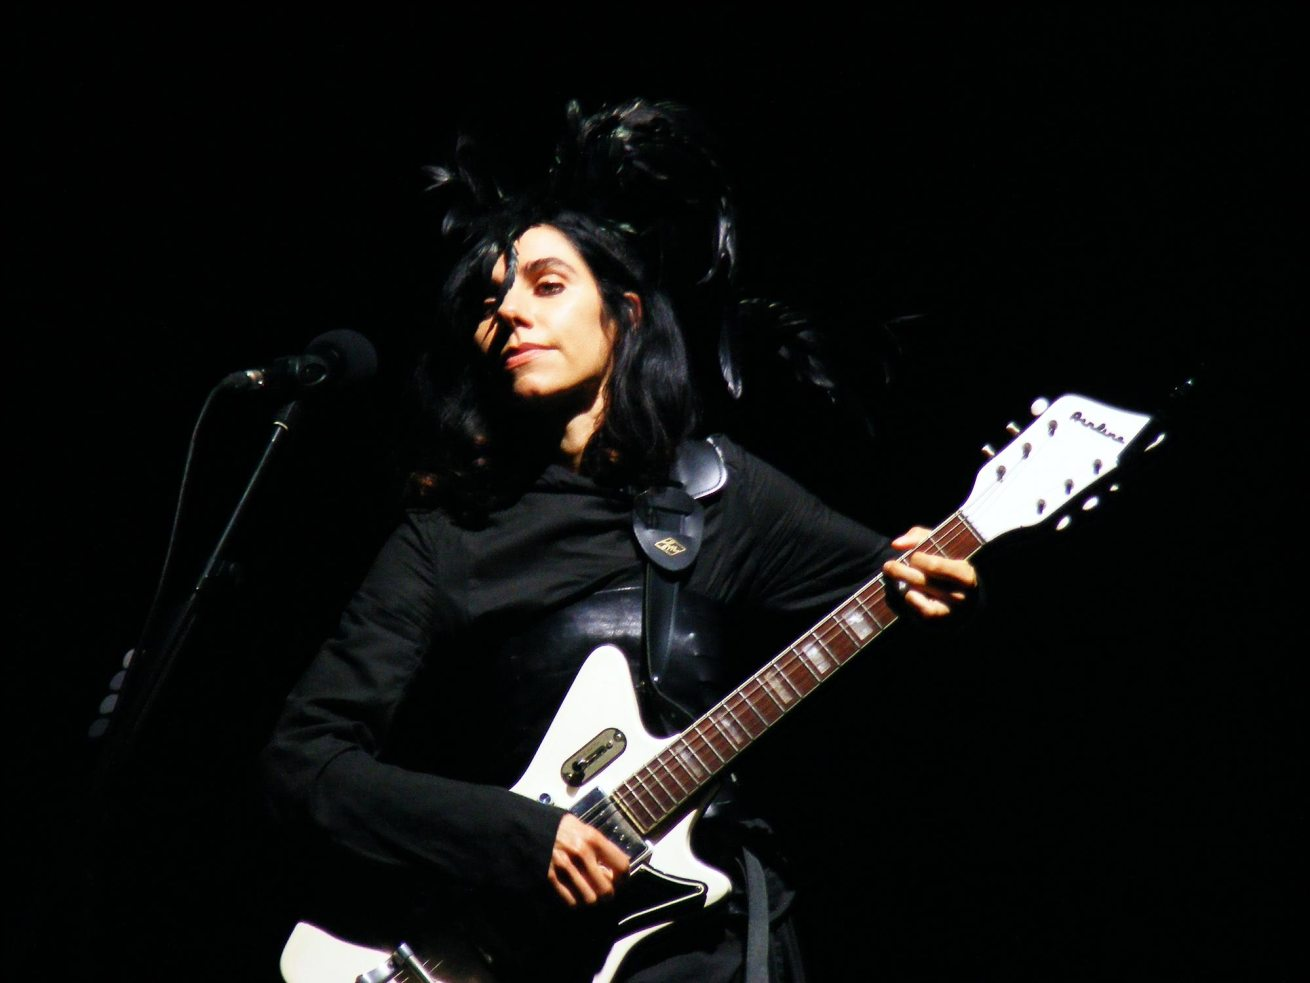 PJ Harvey at the O2 Apollo